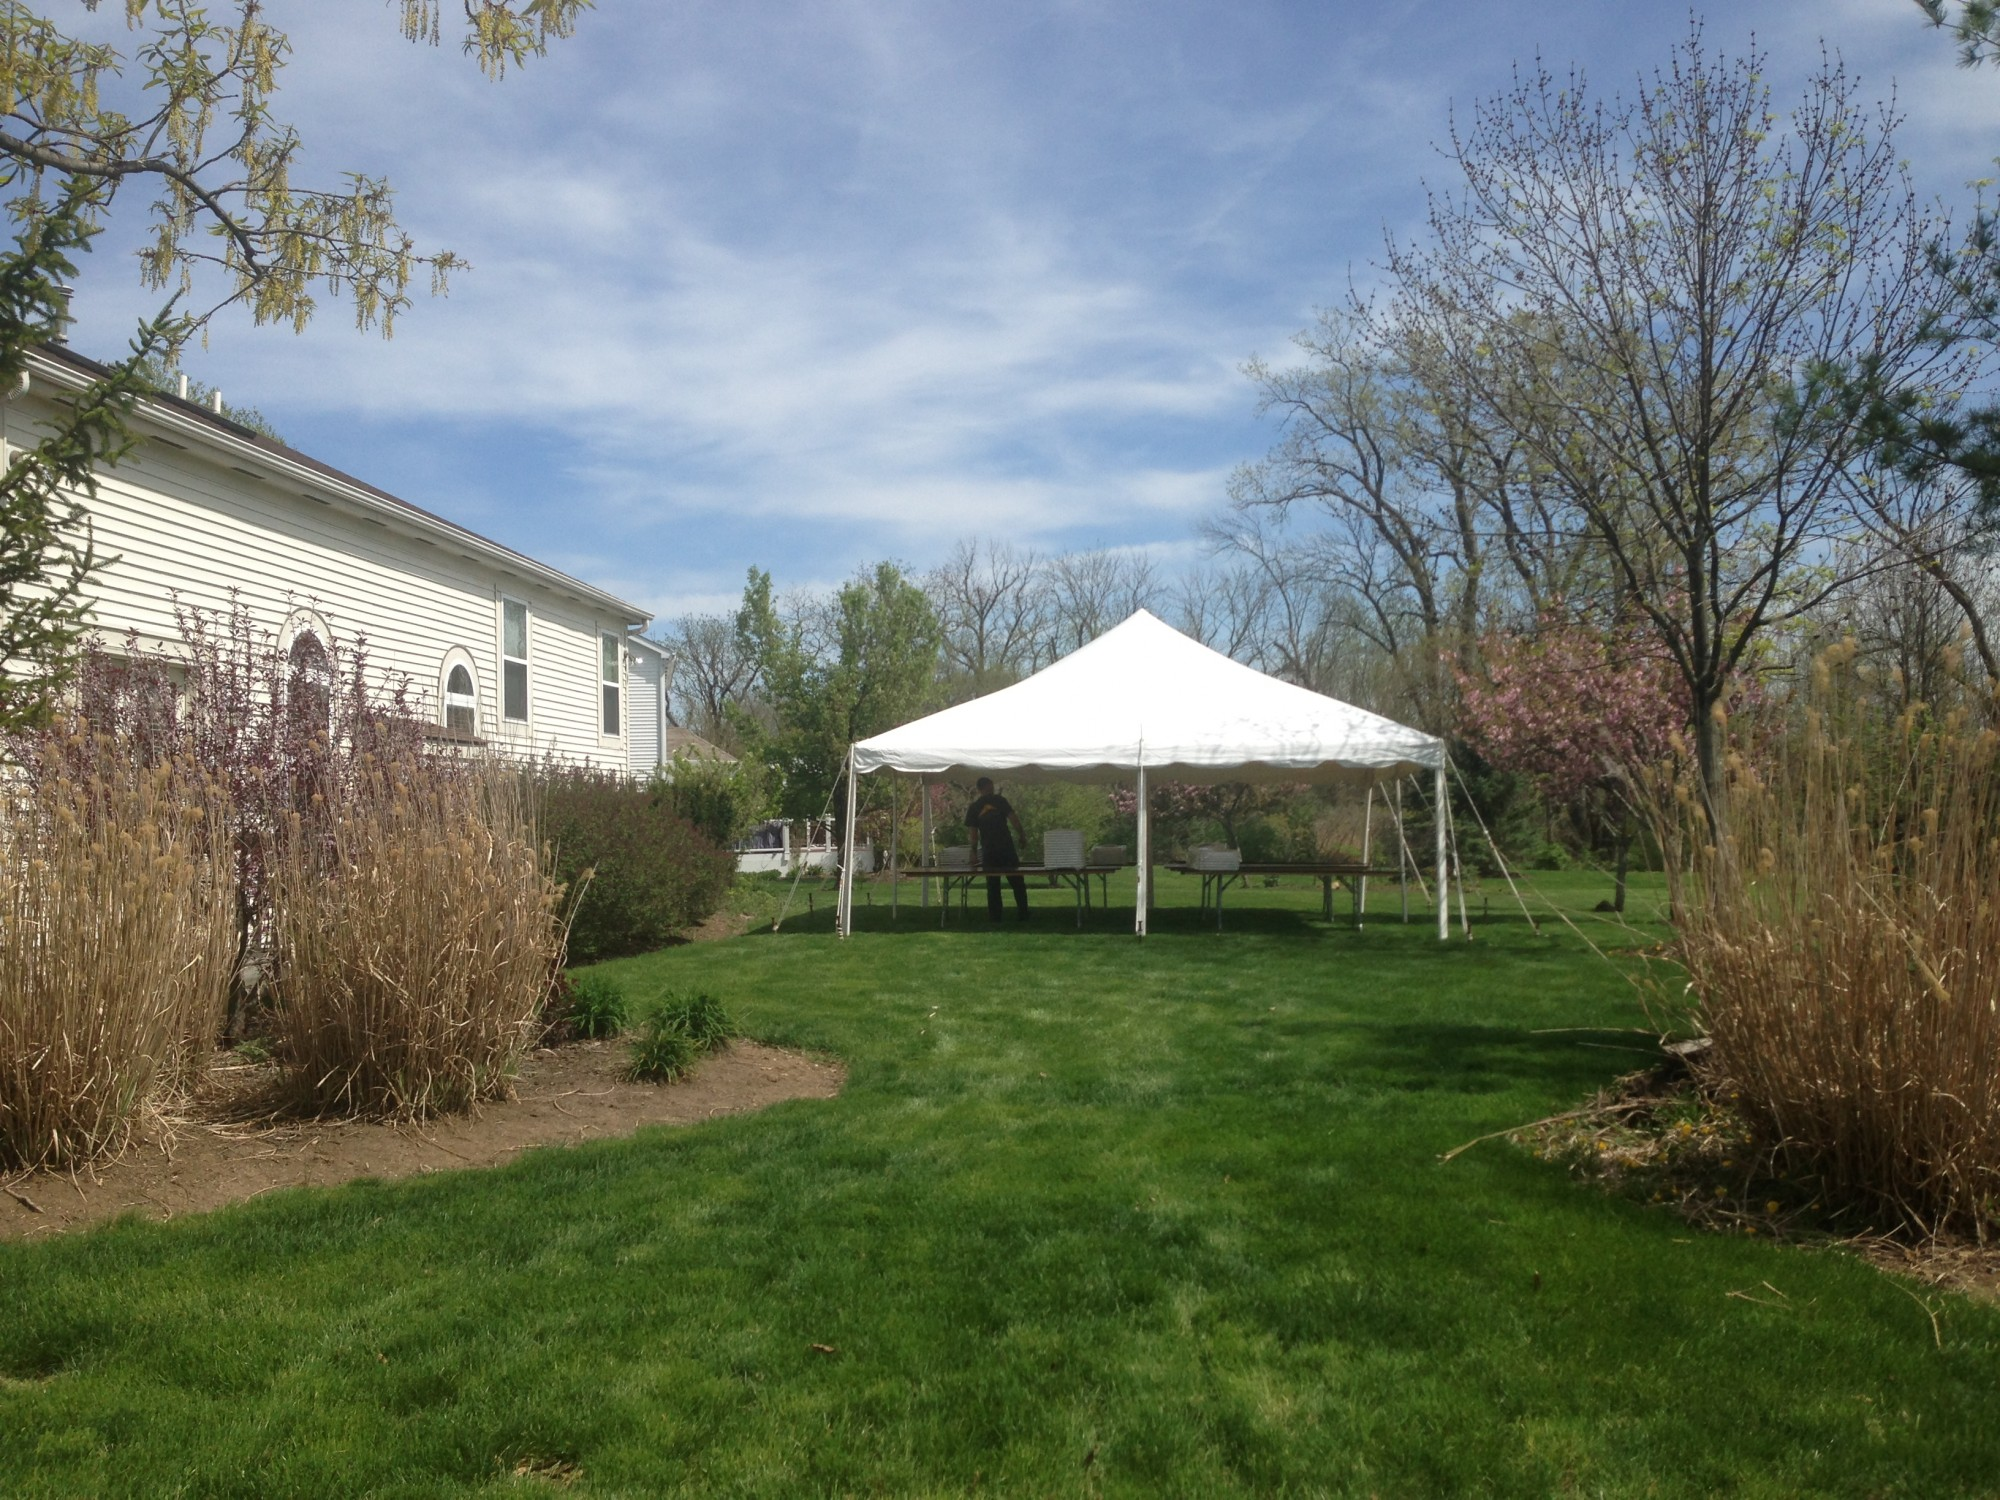 /upload/images/backyard_events/20x20_pole_tent